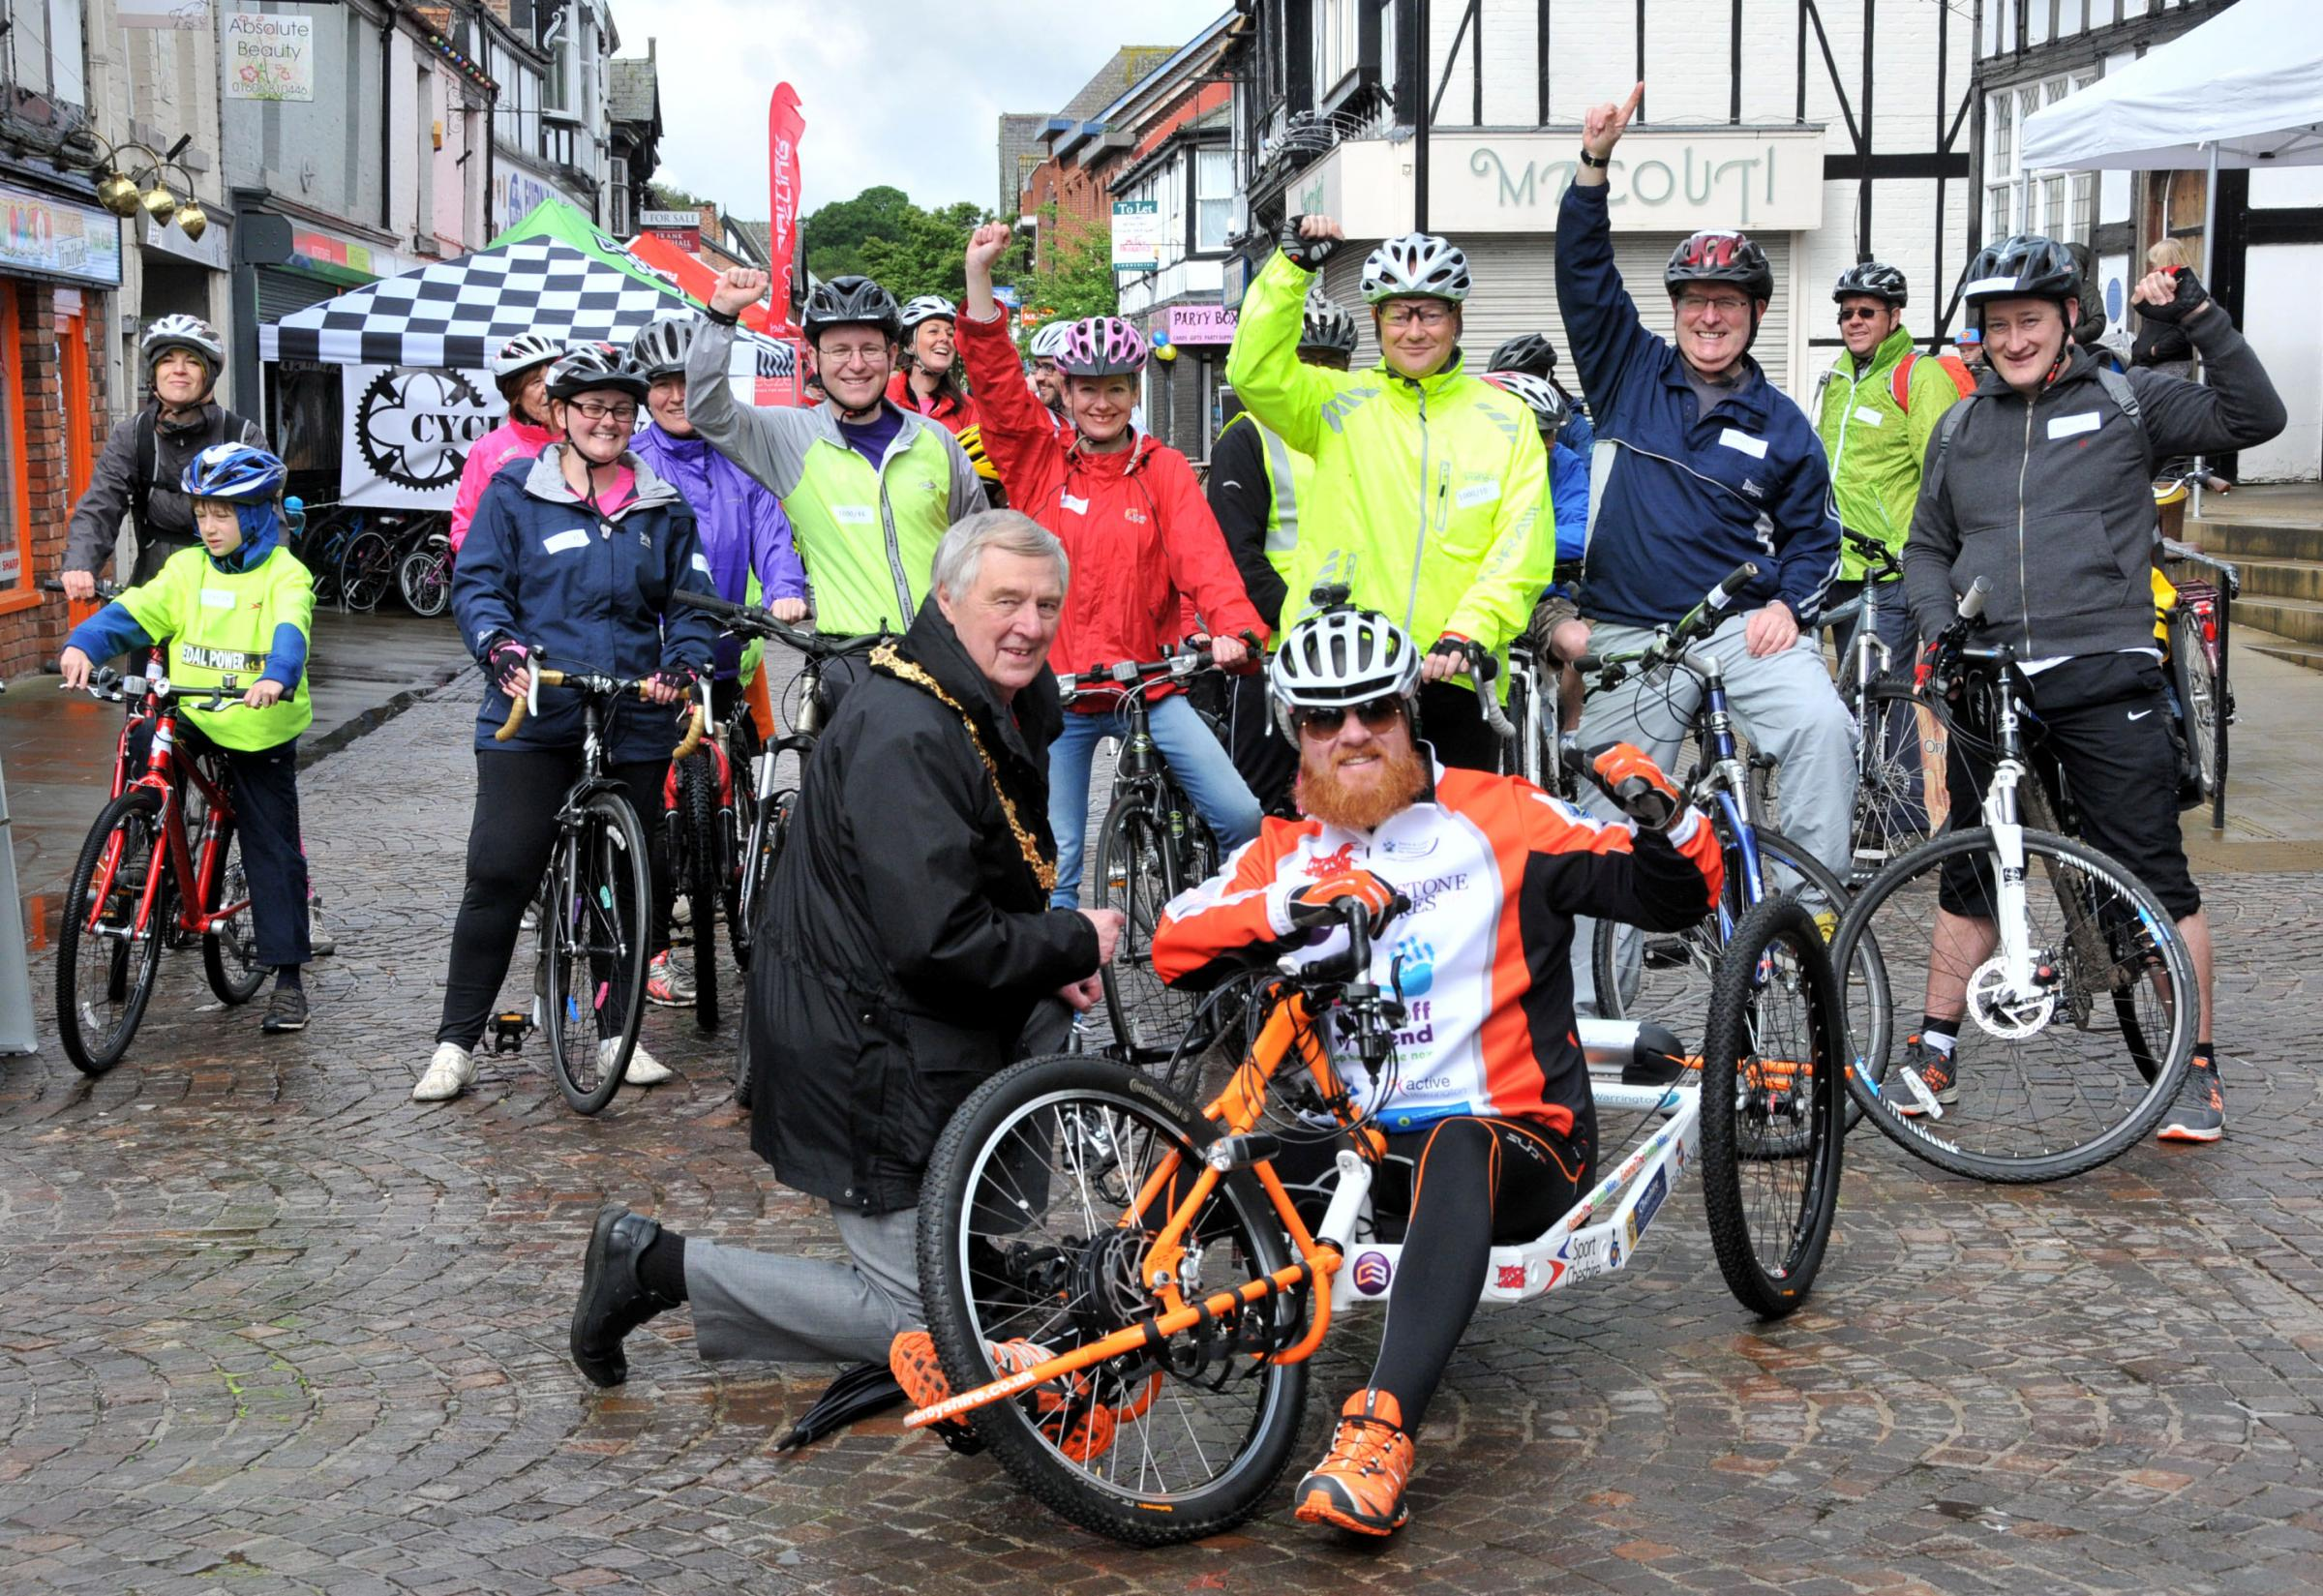 Northwich Guardian: Northwich's mayor Clr Bob Robinson and hand-cyclist Adrian Derbyshire, hate crime ambassador, with riders in the Festival Village.